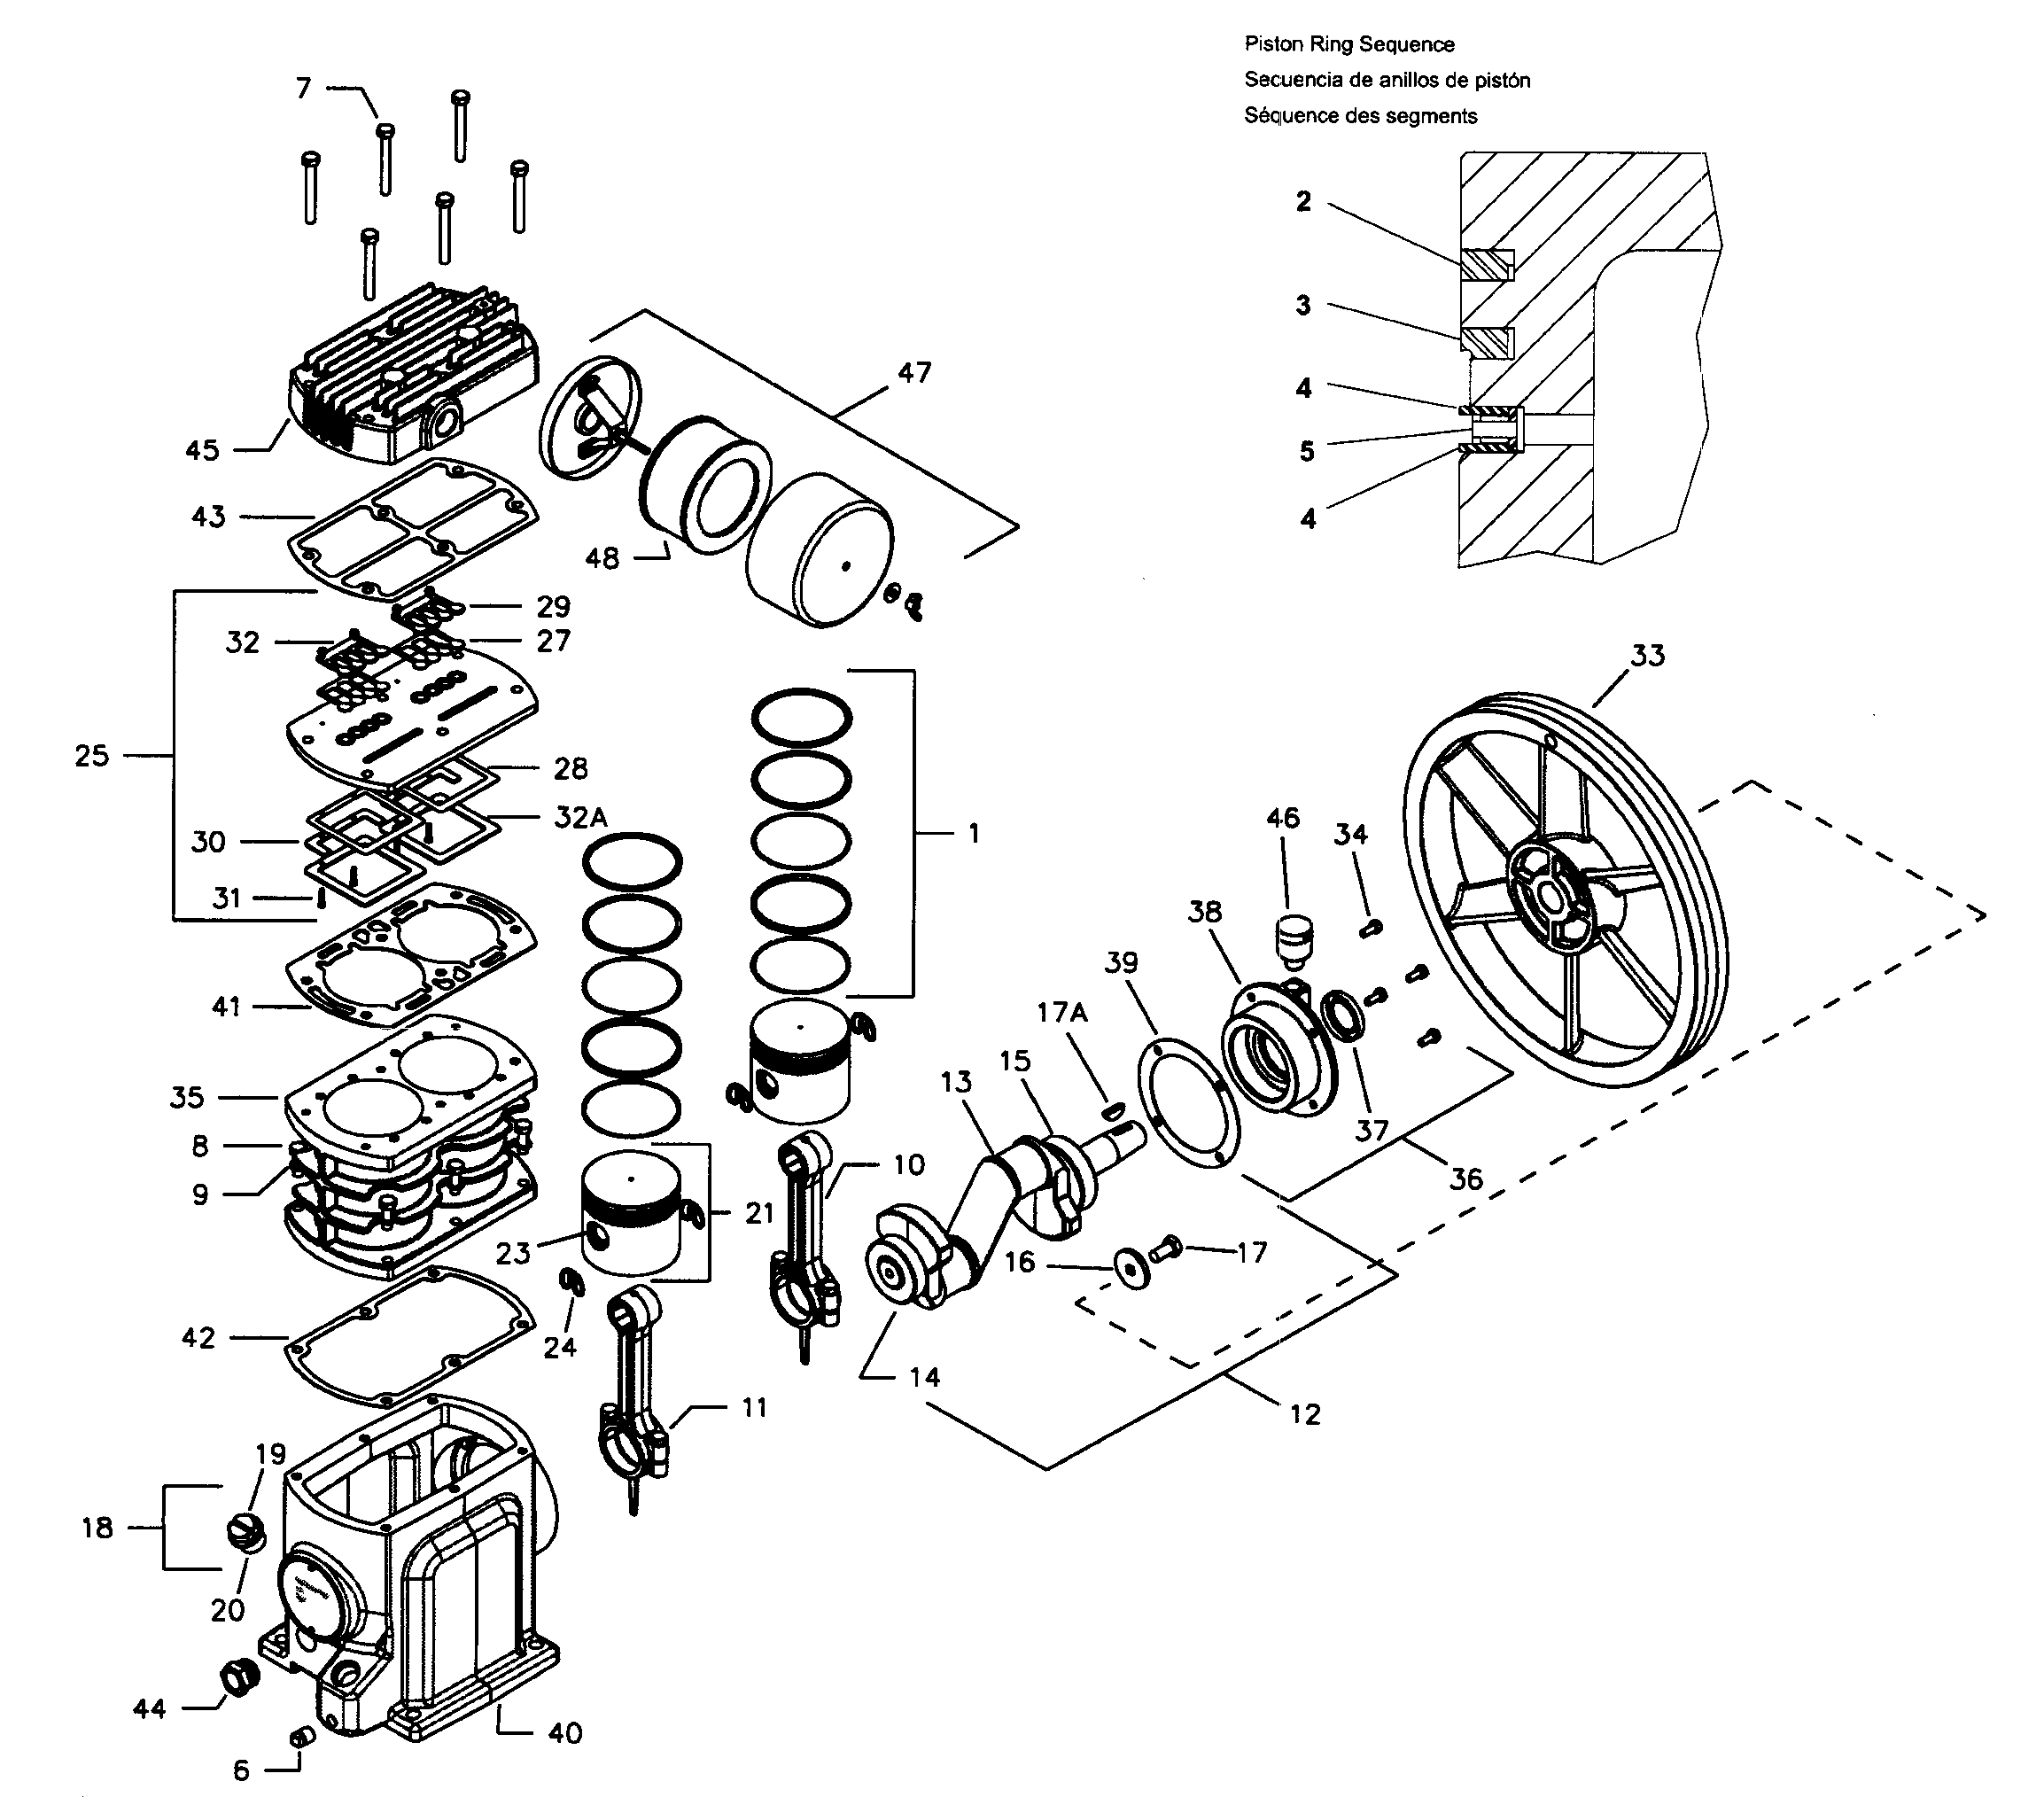 Wiring Diagram Database: Ingersoll Rand Compressor Parts